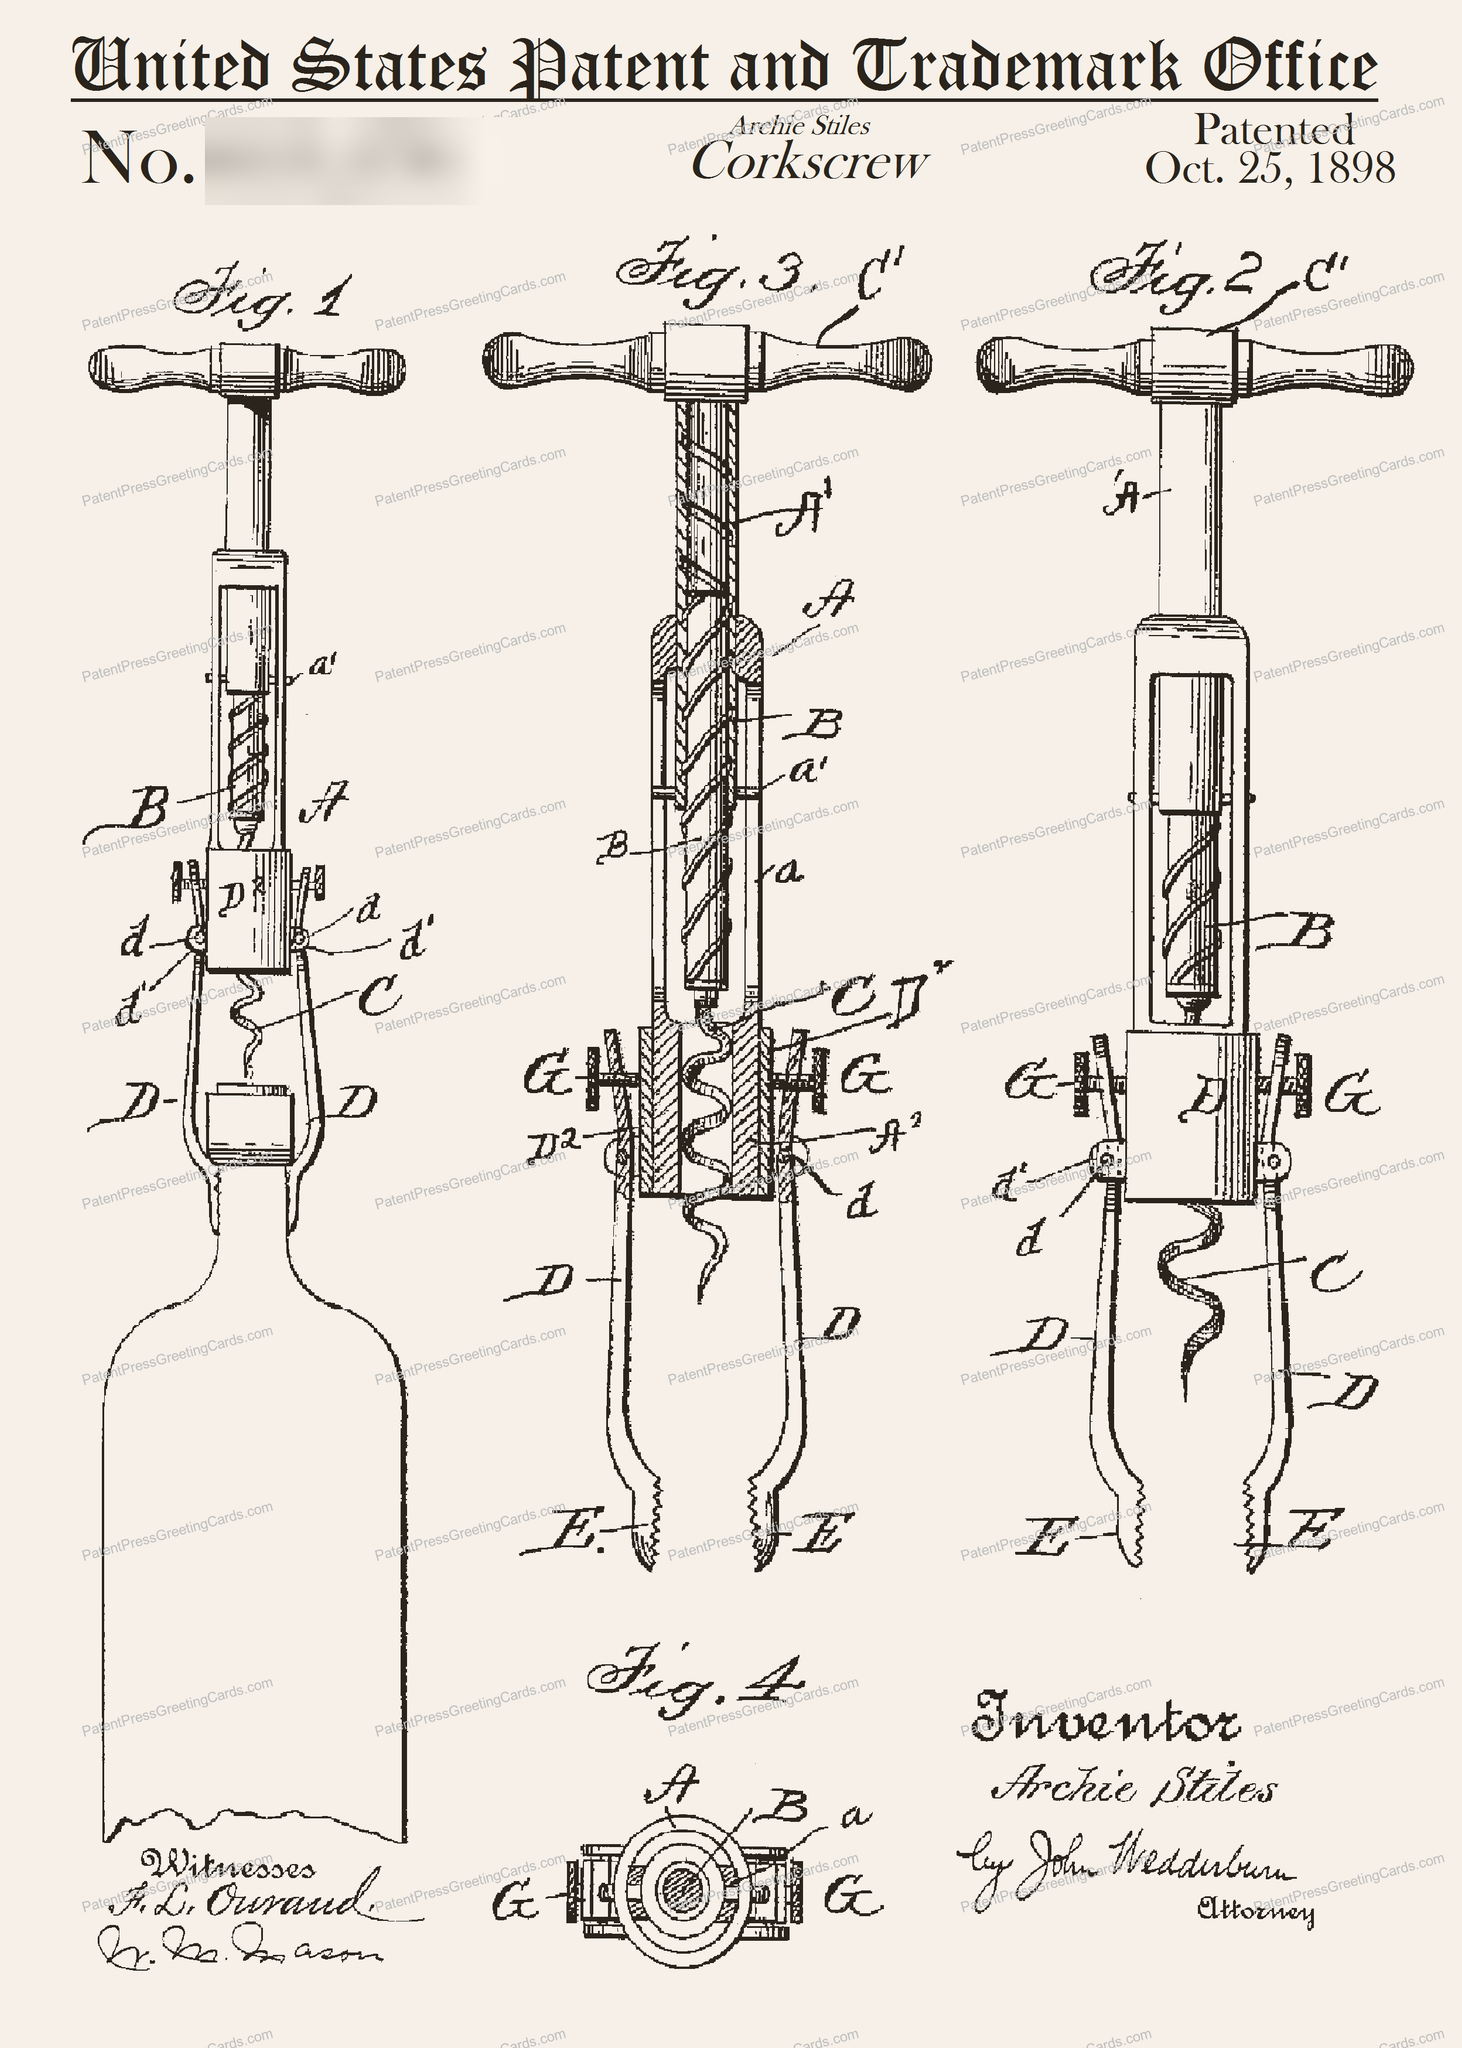 CARD-035: Corkscrew (1898) - Patent Press™